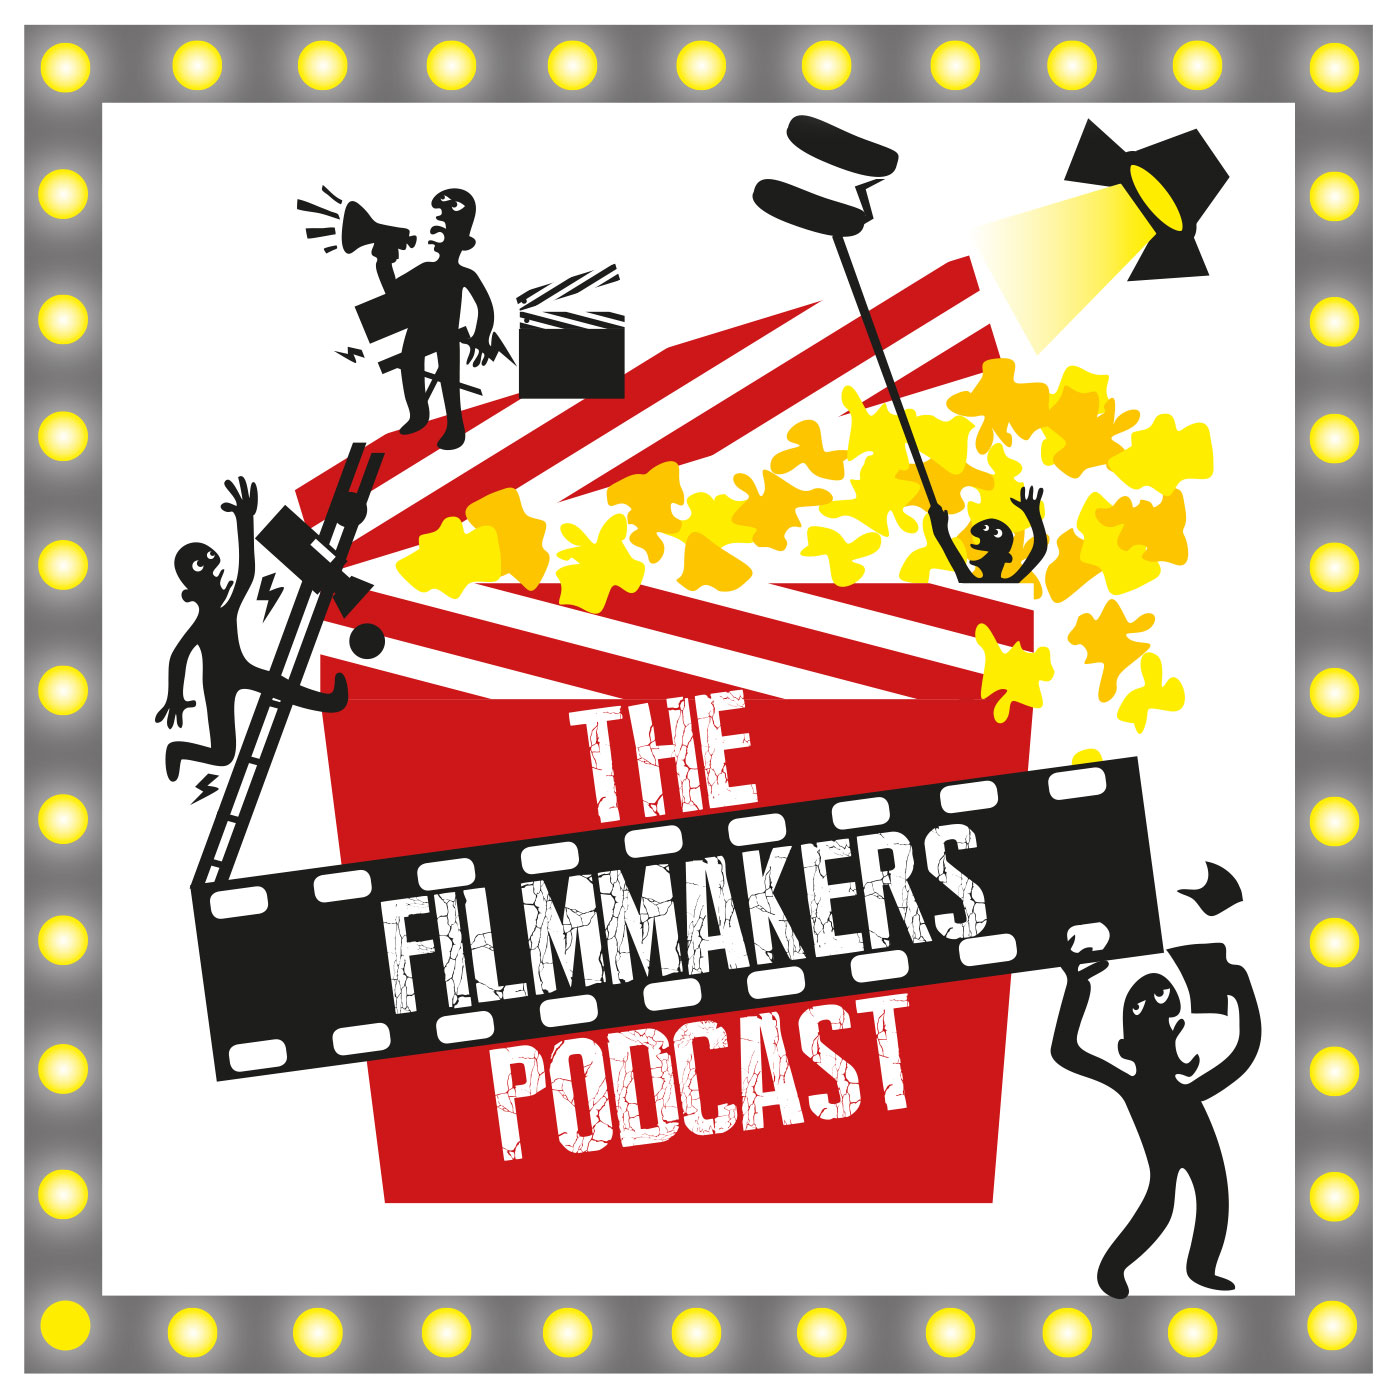 - The Filmmakers Podcast is all about film making. Regular hosts Giles Alderson (The Dare), Dan Richardson (Retribution), Andrew Rodger (World of Darkness) and Christian James (Fanged Up) discuss how to get films made, how to actually make them and how to try not to f... it up in their very humble opinion.From studio film-making to making micro budget indie films and everything in between. A must for any filmmaker, director, screenwriter, producer, actor or film loverChatting with guests which have included Mark Strong (Kingsman), Jack Tarling (God's Own Country), Joey Ansah (Bourne), Andy Nyman (Ghost Stories), Rupert Graves (Sherlock), Ben Caron (The Crown) Mark Sanger (Gravity) and many more all about the craft of making films.New episode released every Tuesday